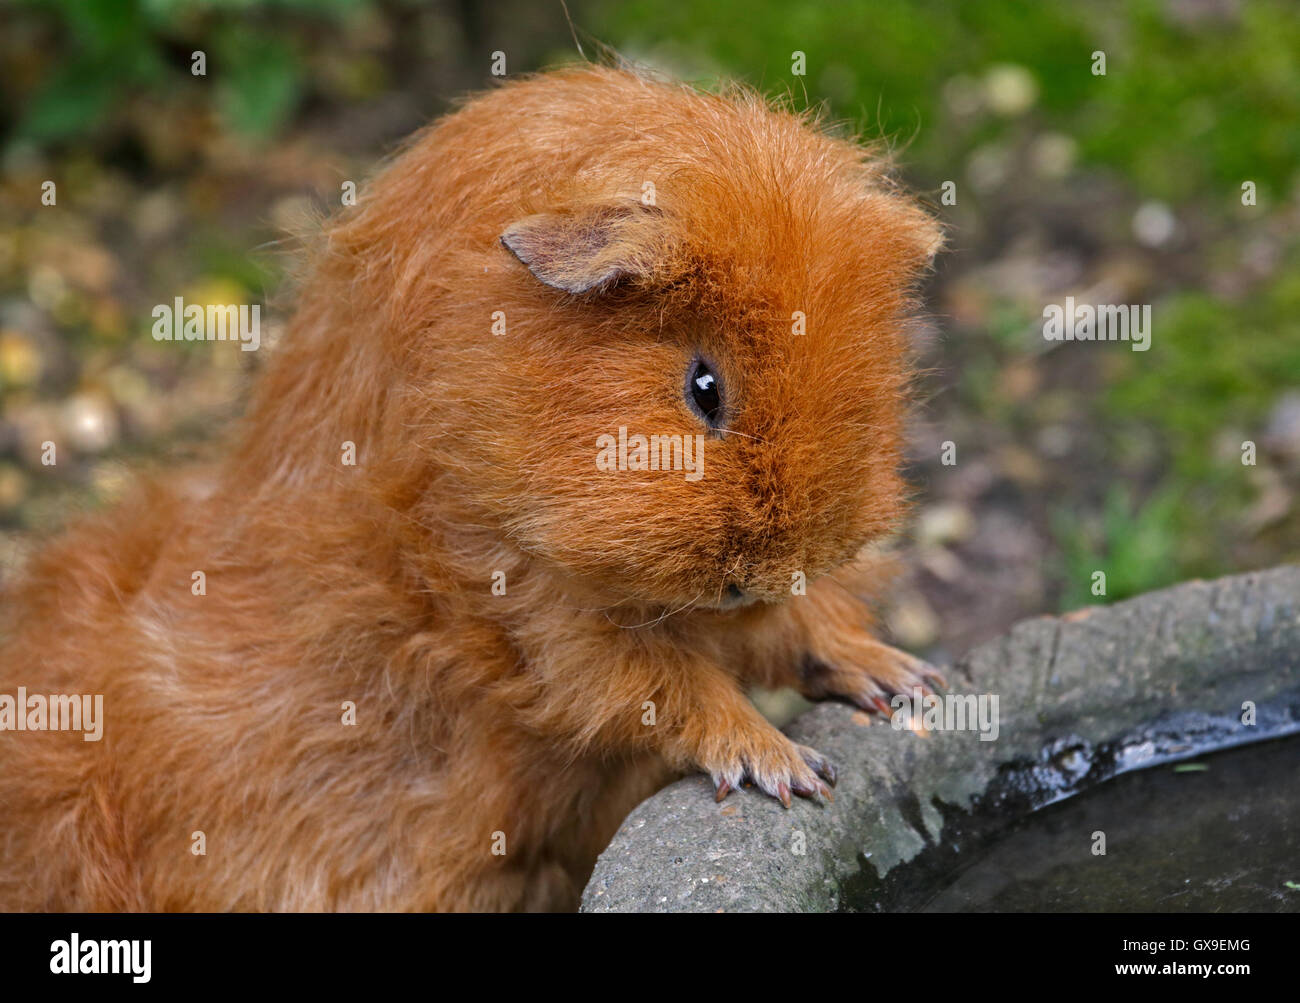 Golden guinea pig stock photos golden guinea pig stock images golden guinea pig cavia porcellus at drinking bowl stock image jeuxipadfo Gallery